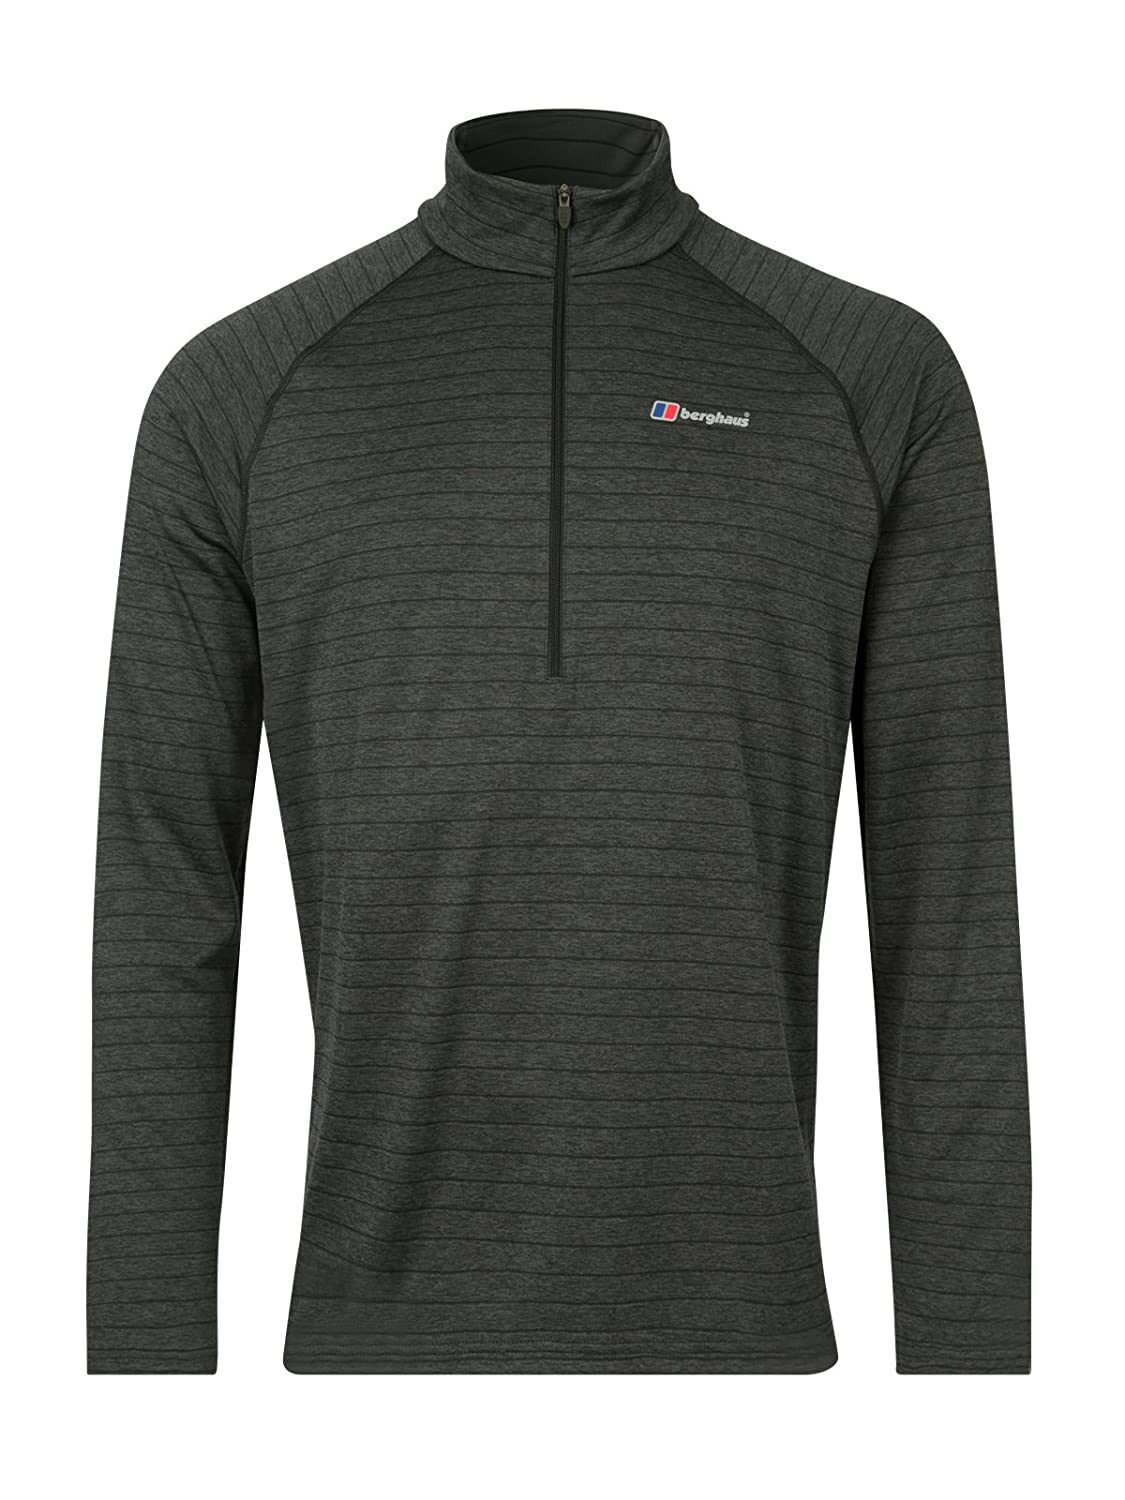 Berghaus Herren Thermal Tech Long Sleeve Half Zip Top